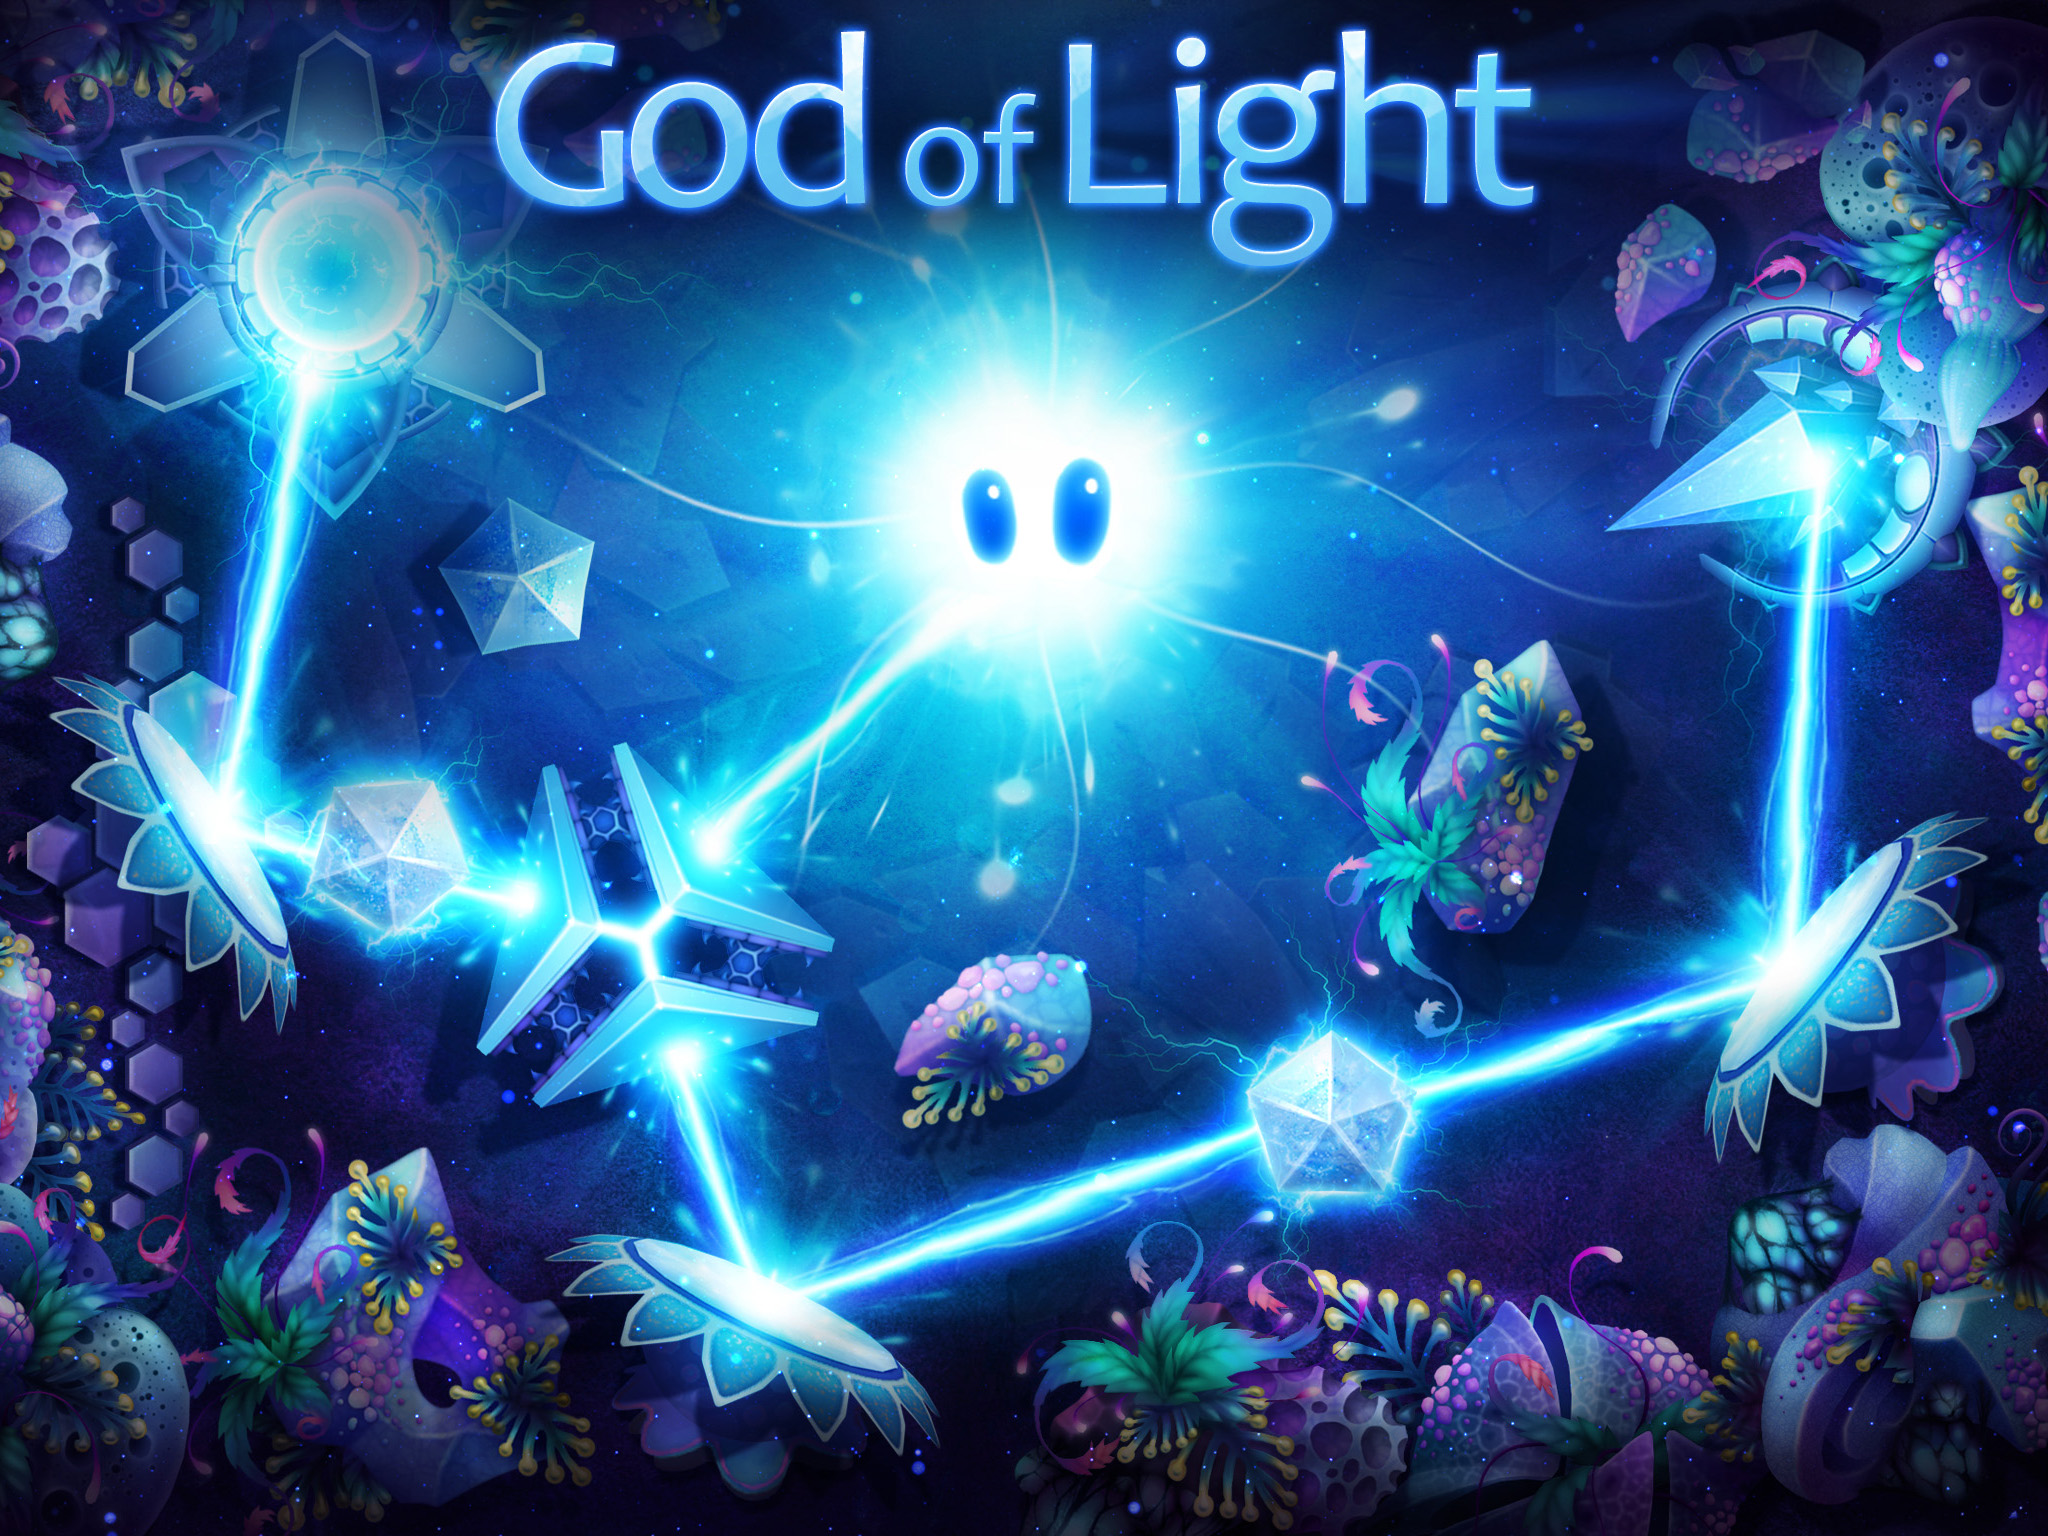 You'll help Shiny bounce light beams to save the world in upcoming puzzler God of Light